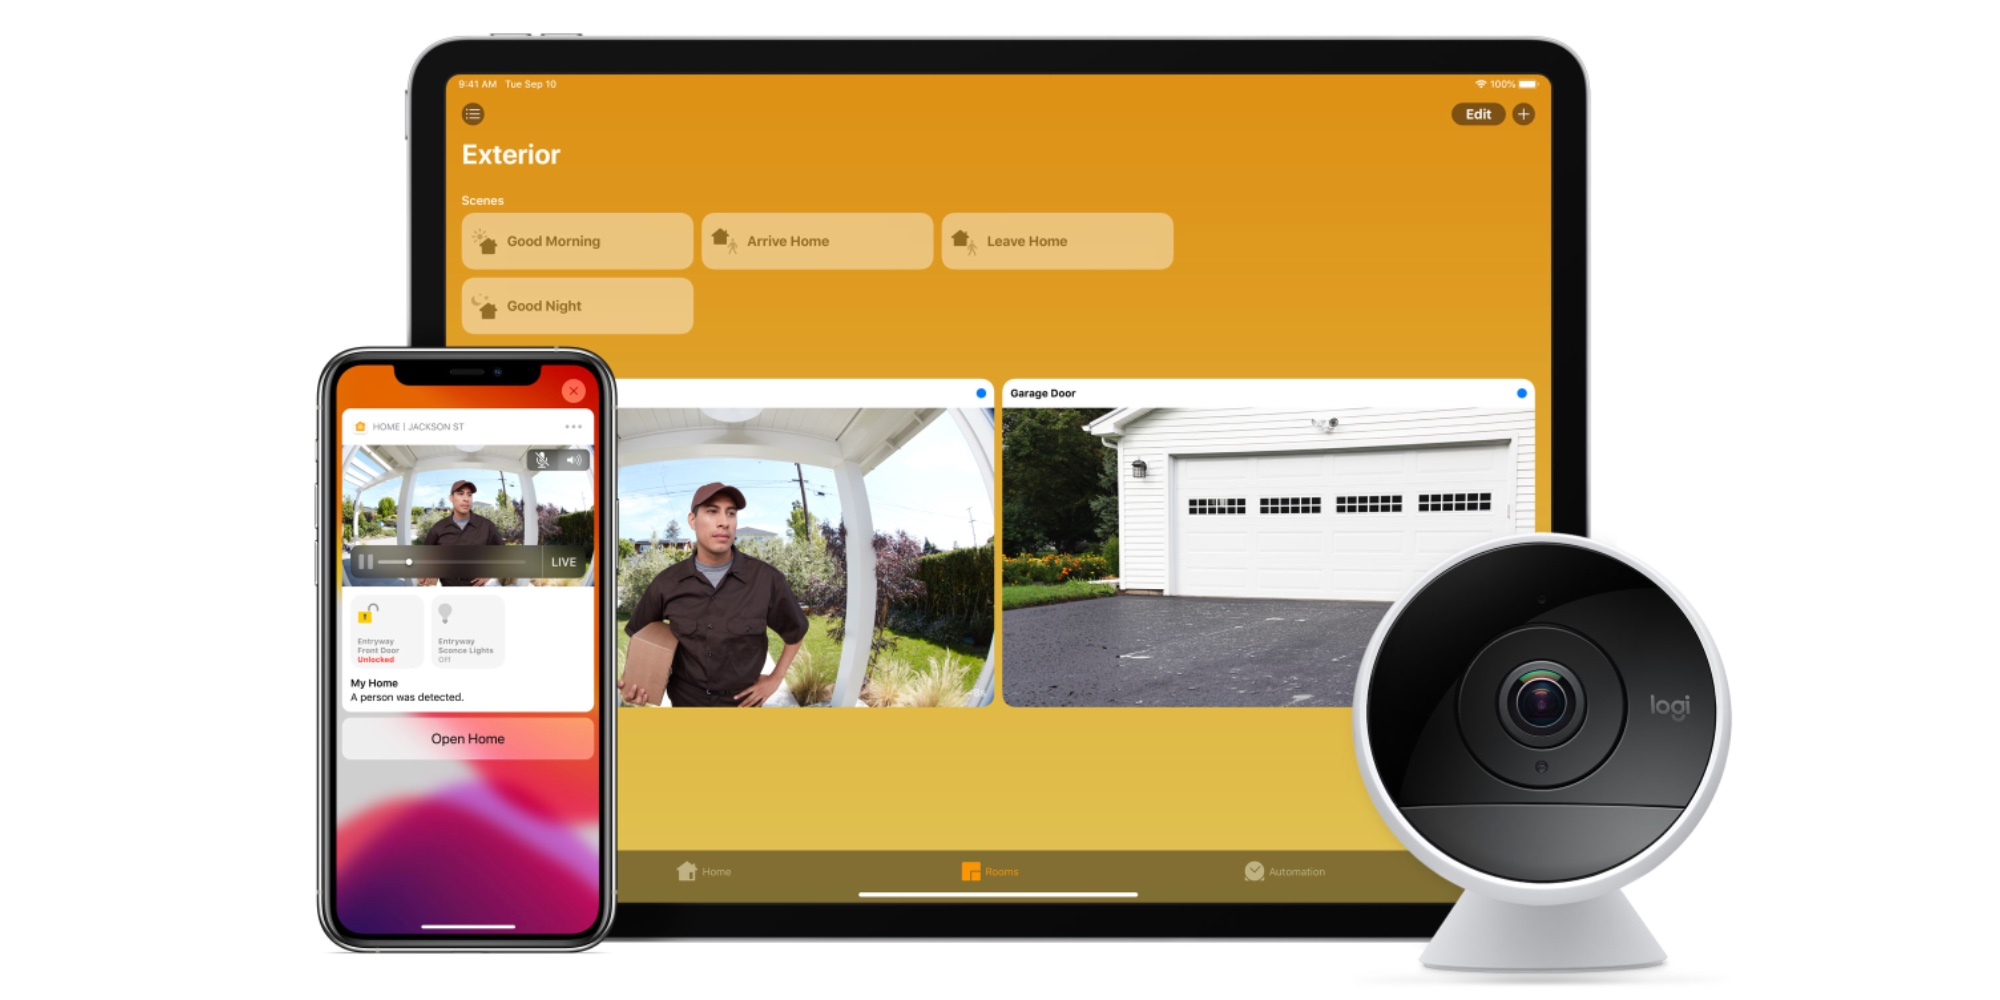 HomeKit Secure Video Logi Circle 2